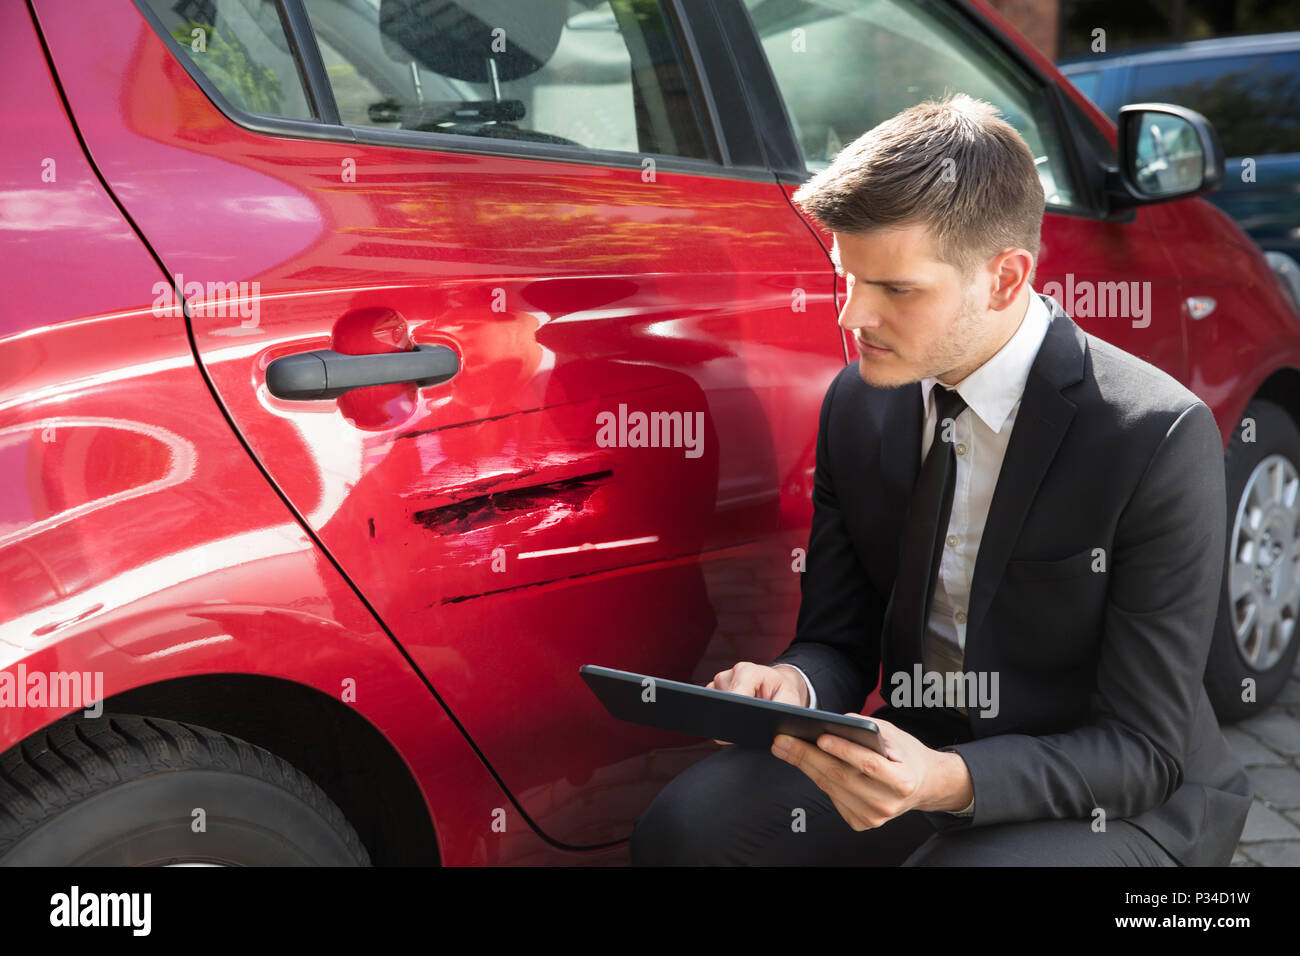 Insurance Agent Filling Insurance Form Near Damaged Red Car - Stock Image